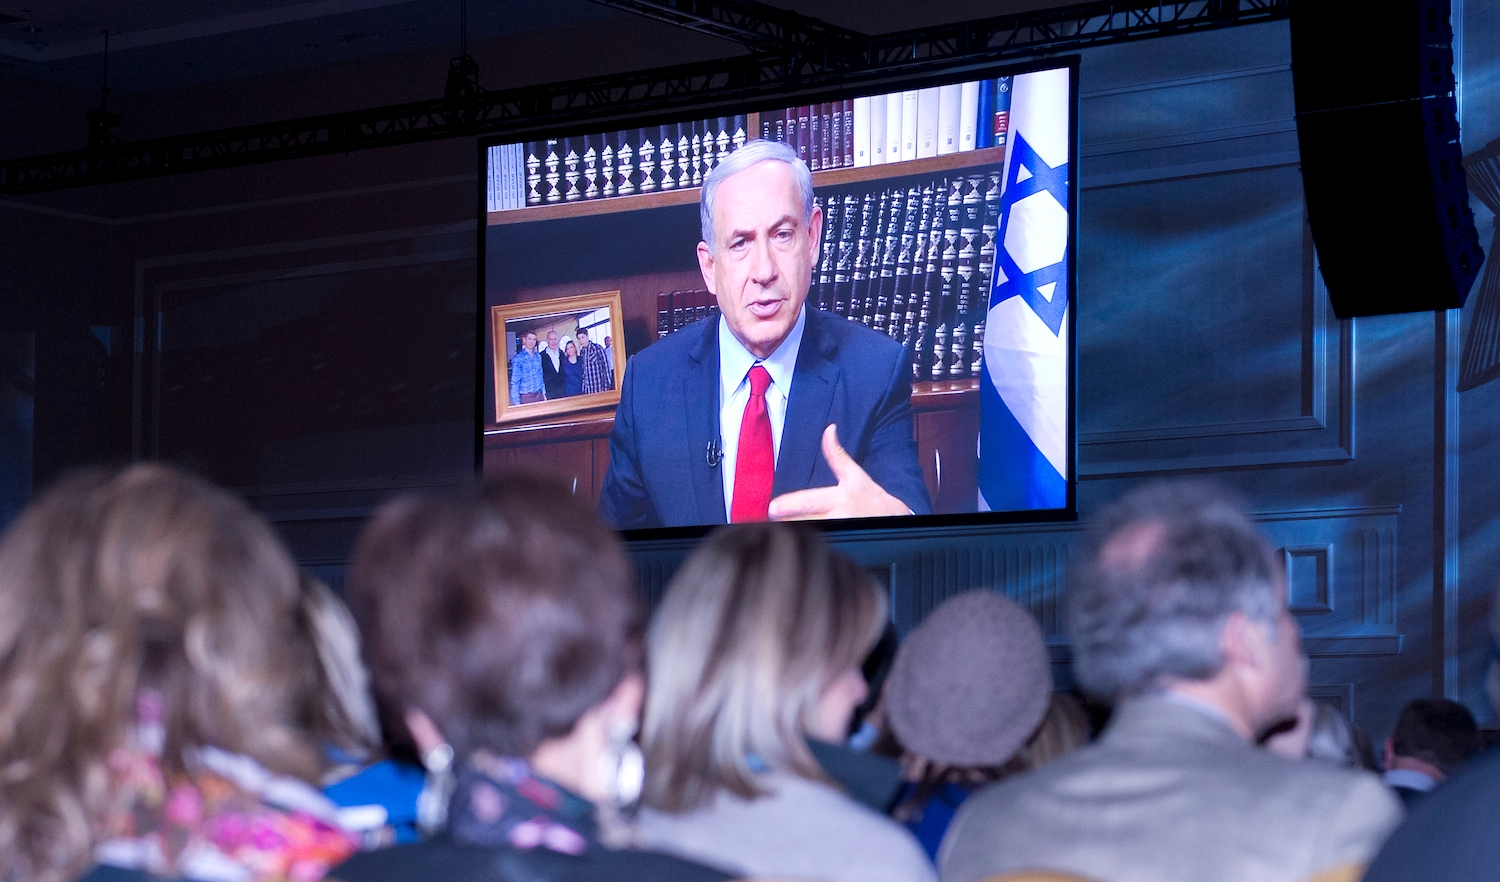 Israeli Prime Minister Benjamin Netanyahu addressing the Jewish Federations of North America's General Assembly in suburban Washington by video link, Nov. 11, 2014. (Ron Sachs)